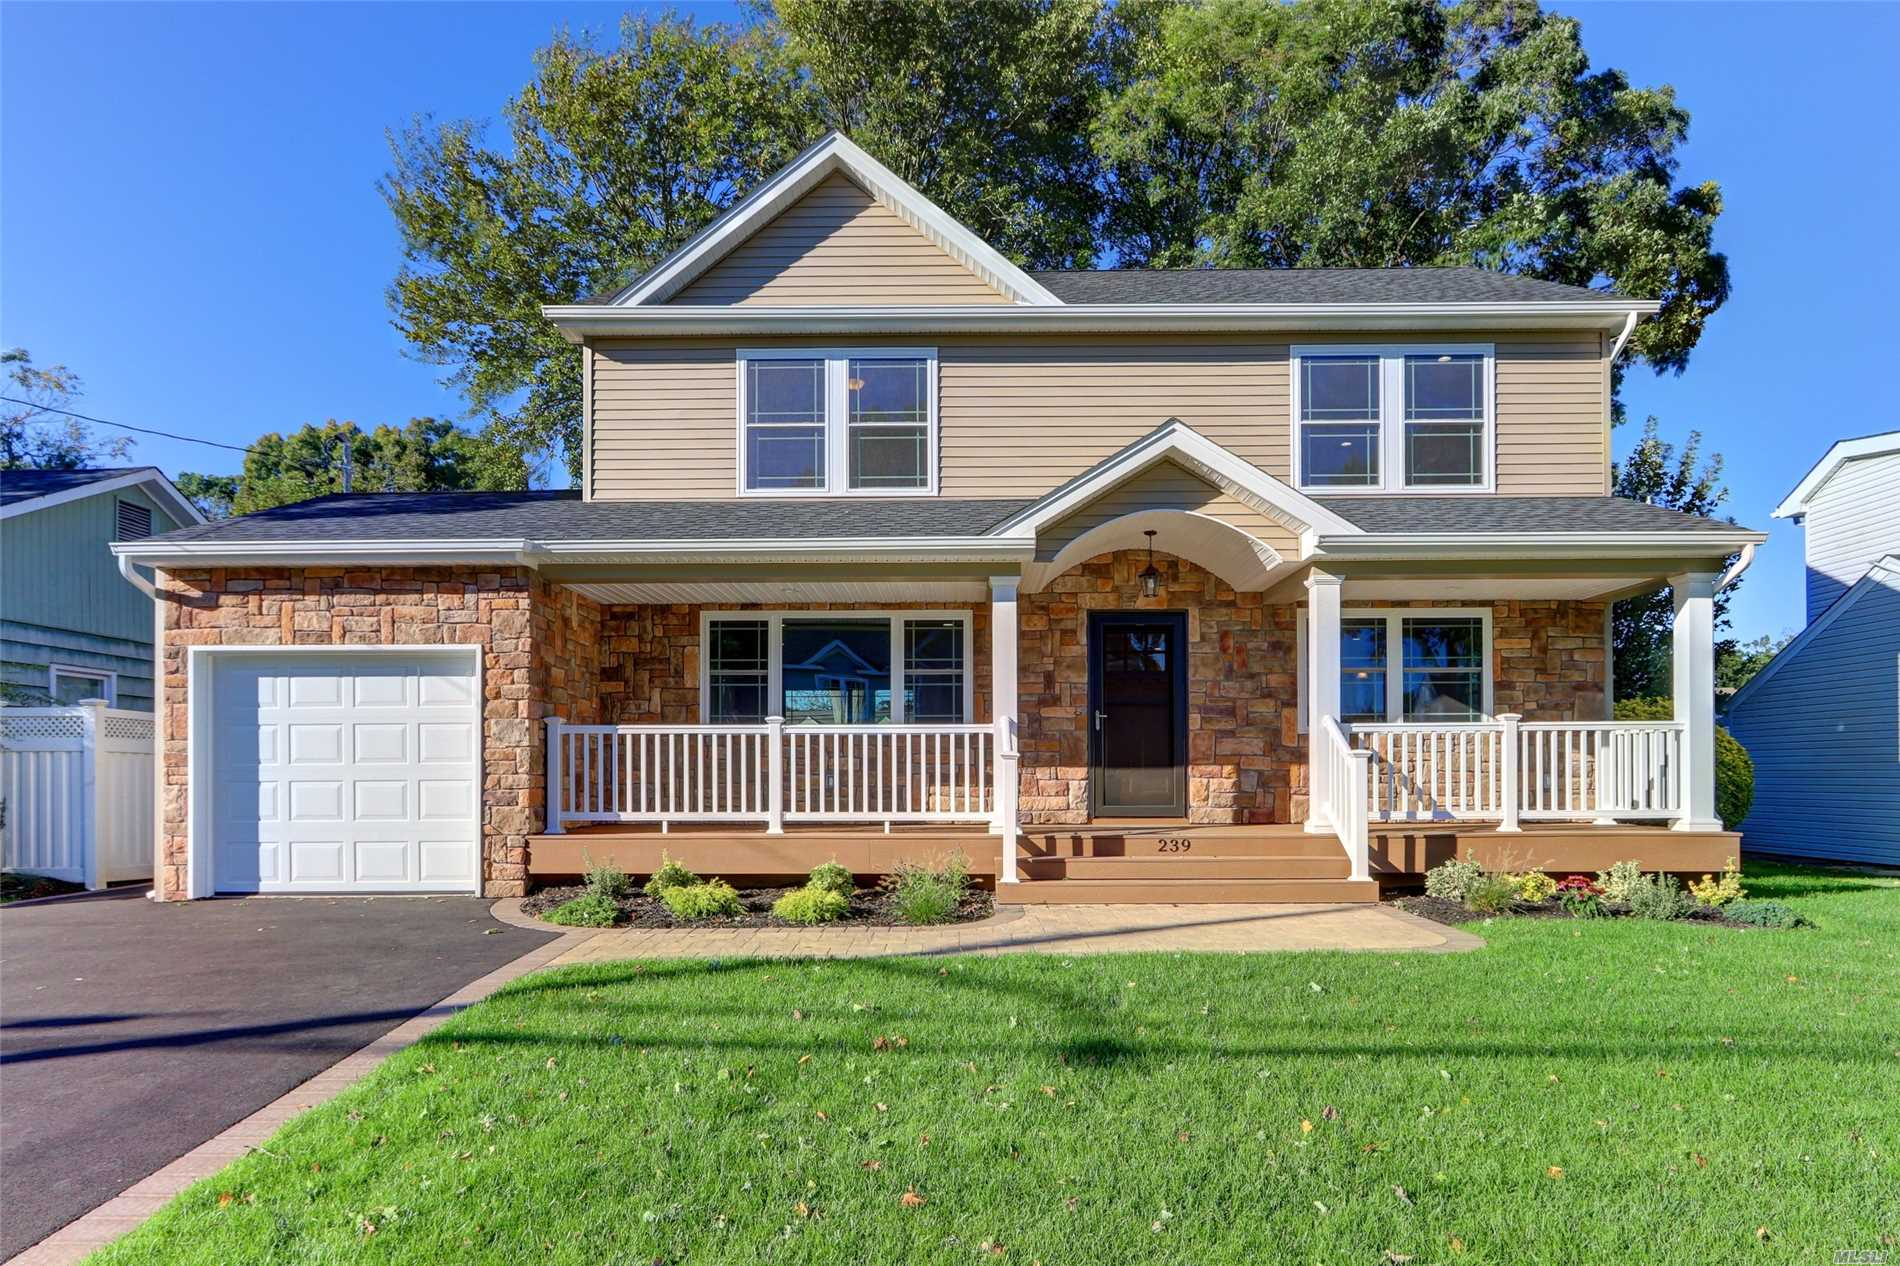 This Diamond Colonial Is Fully Loaded Featuring Stunning Kitchen/Granite Island/Ge Profile Ss Appl...Gleaming Hardwood Flrs..Crown Molding Thru Out 1st Flr..Master Bedroom W/2 Walk In Closets/Full Bath/Cac..Hydronic Gas Htg..2Zone...Igs..Front Porch..One Car Garage/ Builder Spared No Expense